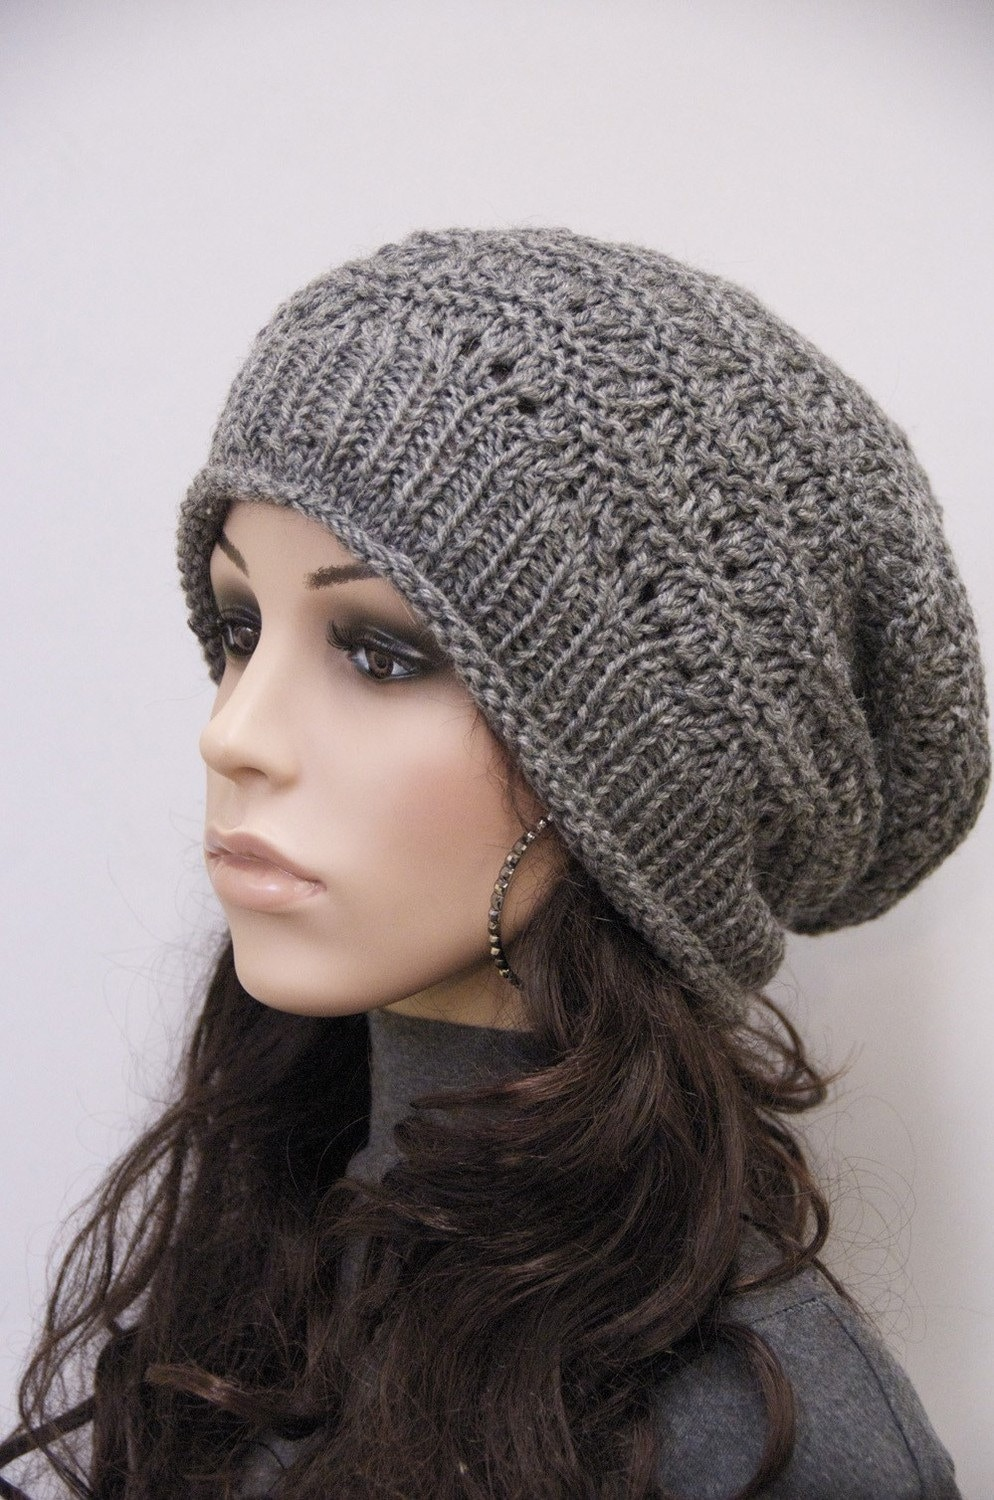 Knitting Patterns Hats : Knit hat Charcoal Chunky Wool Hat slouchy hatwool by MaxMelody